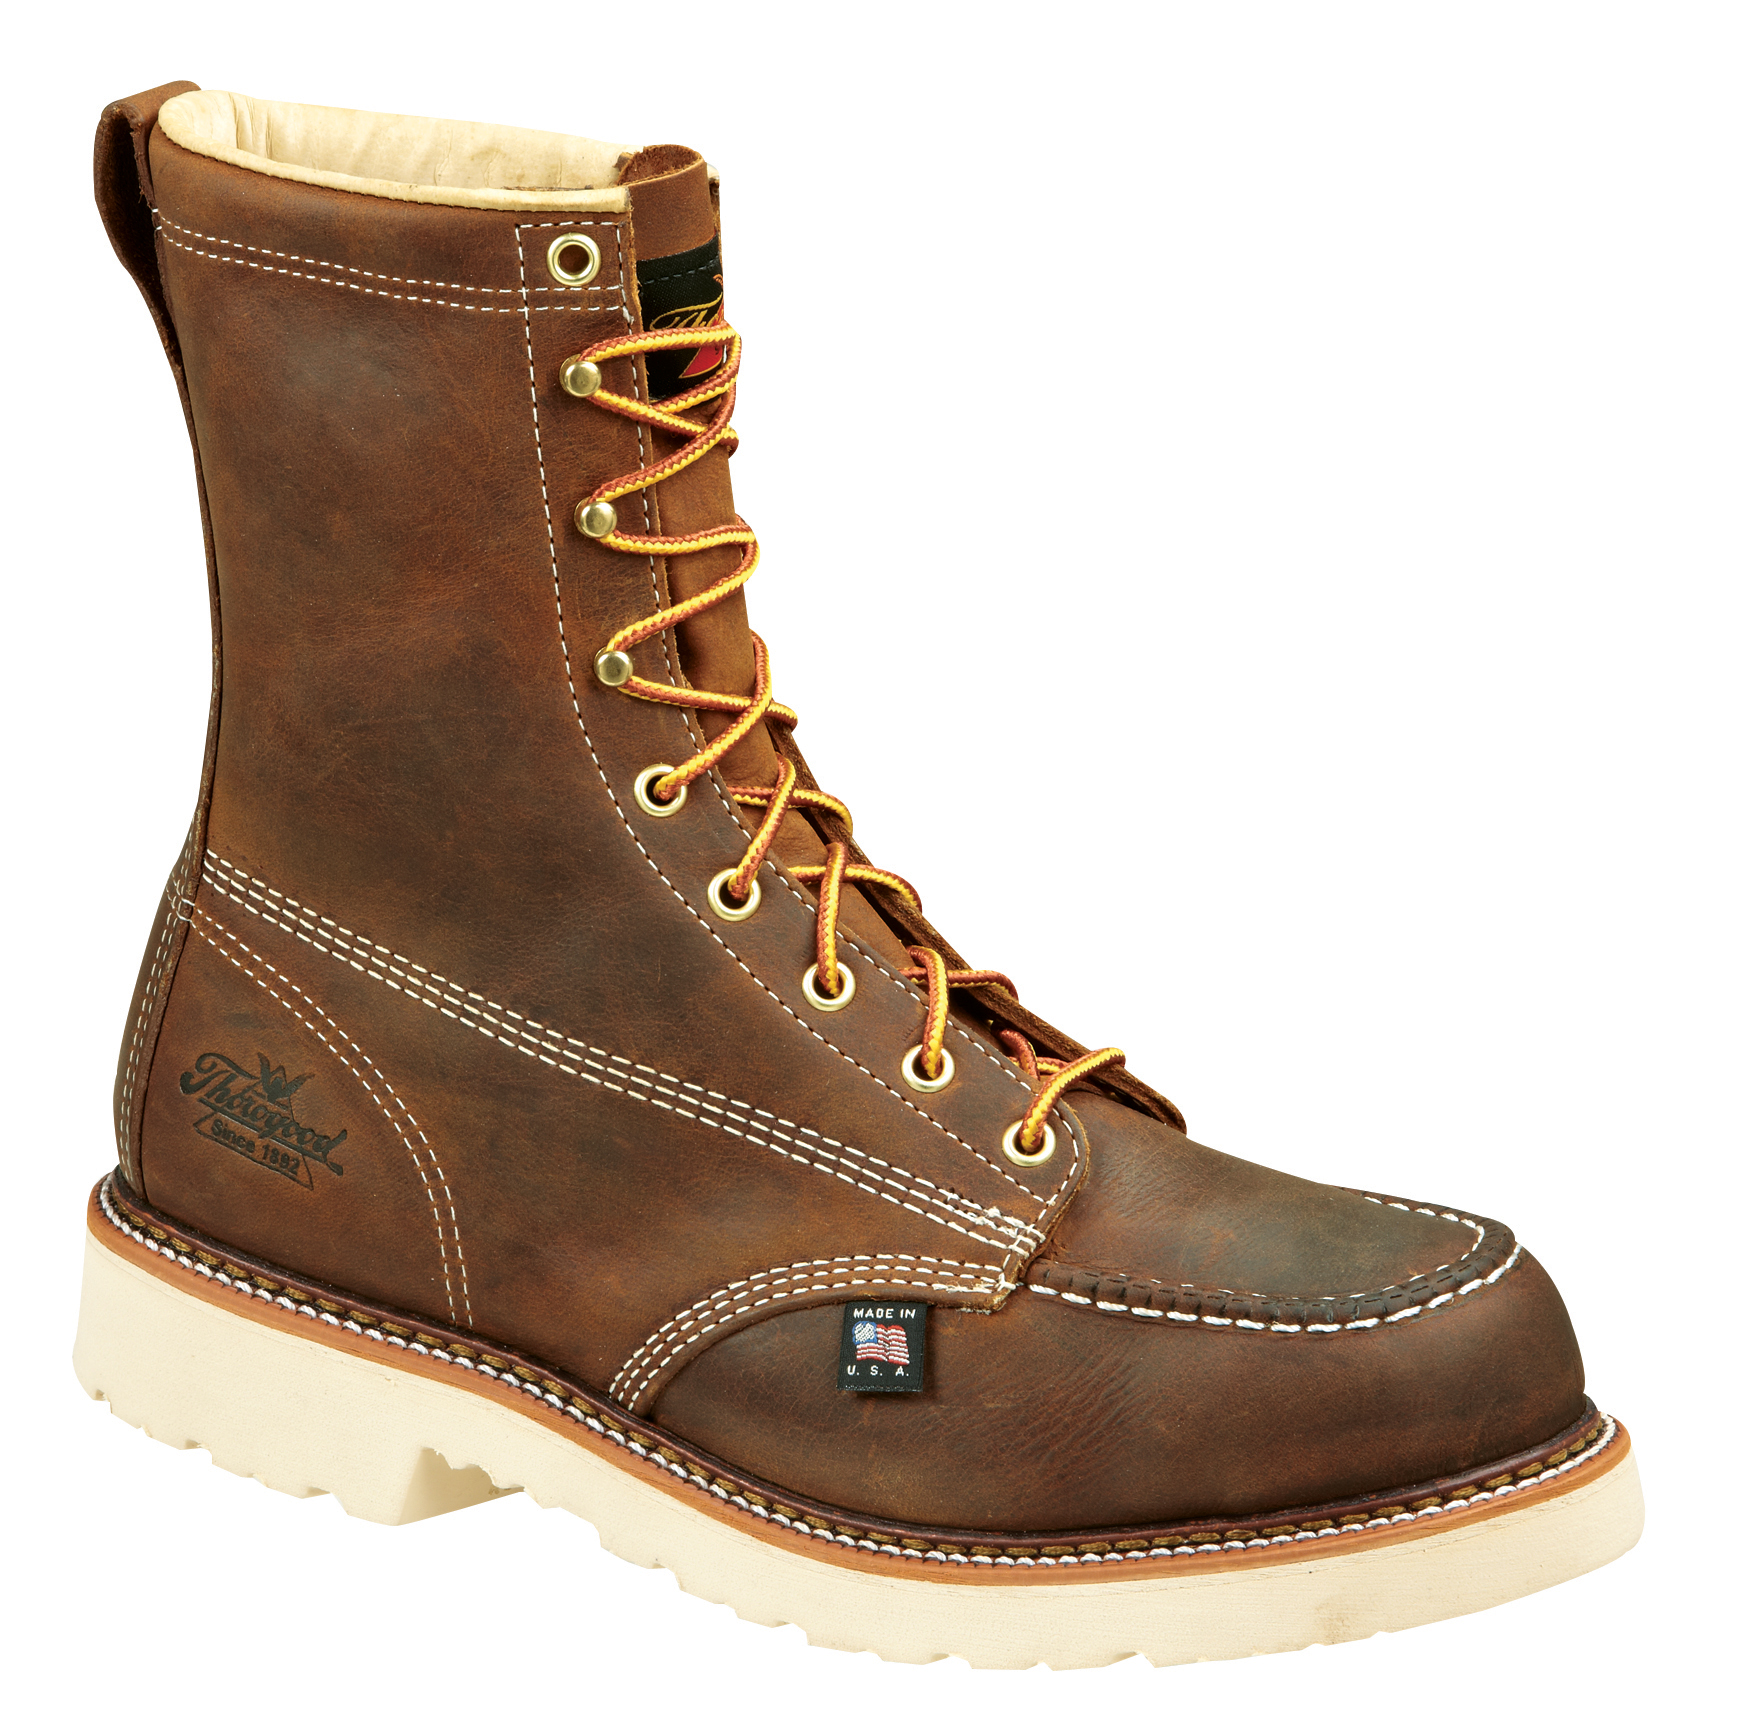 838ad88561c Men's Steel Toe Boots | Thorogood, Twisted X, & More